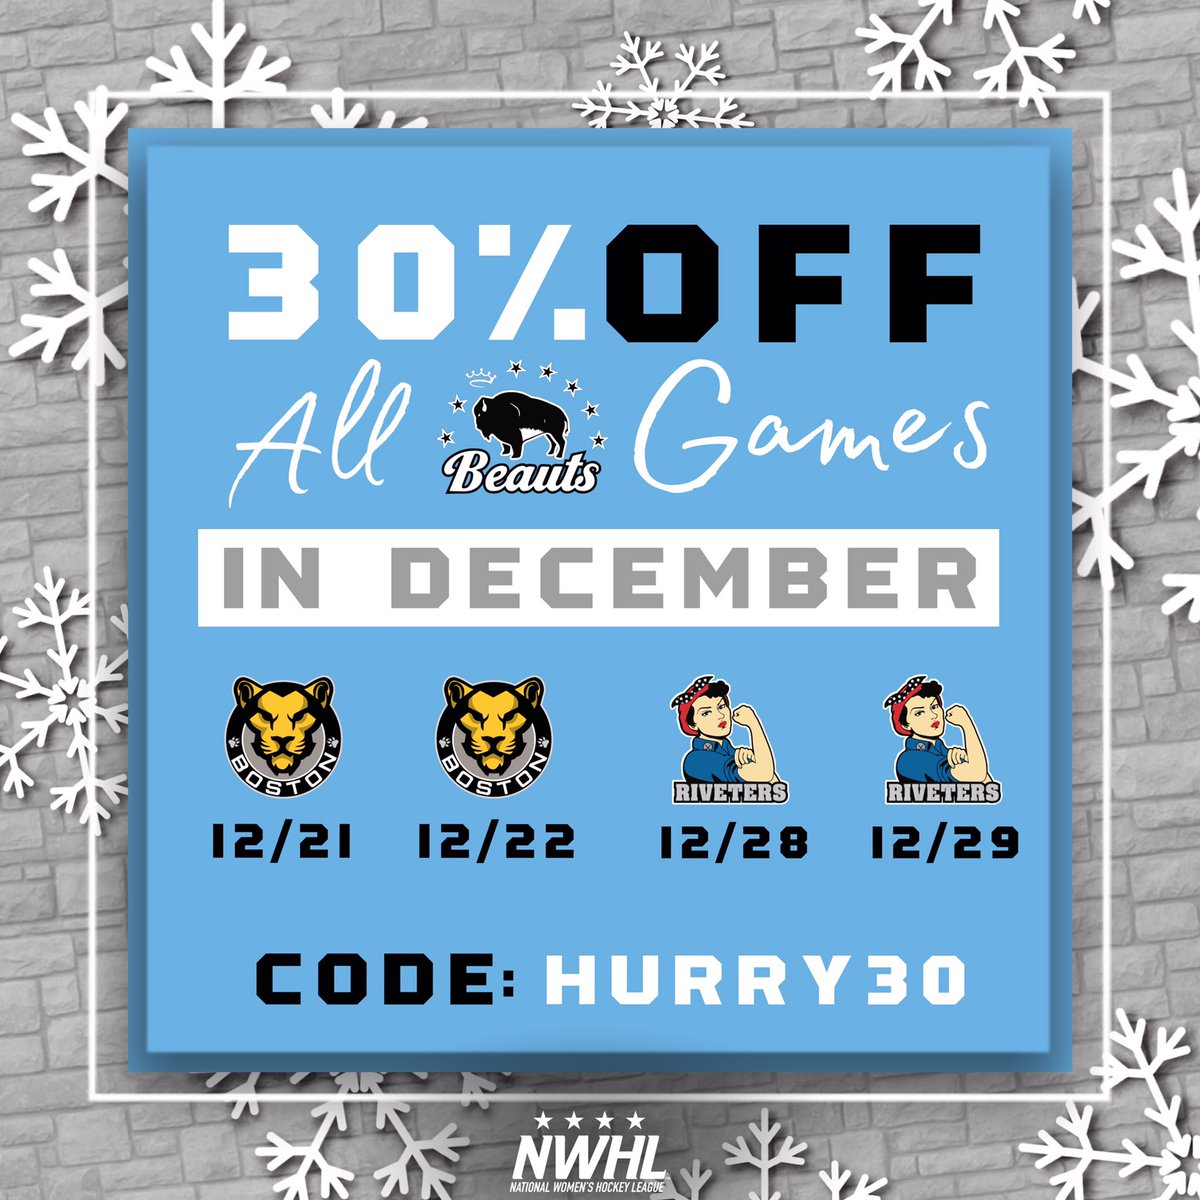 @BuffaloBeauts's photo on TODAY ONLY